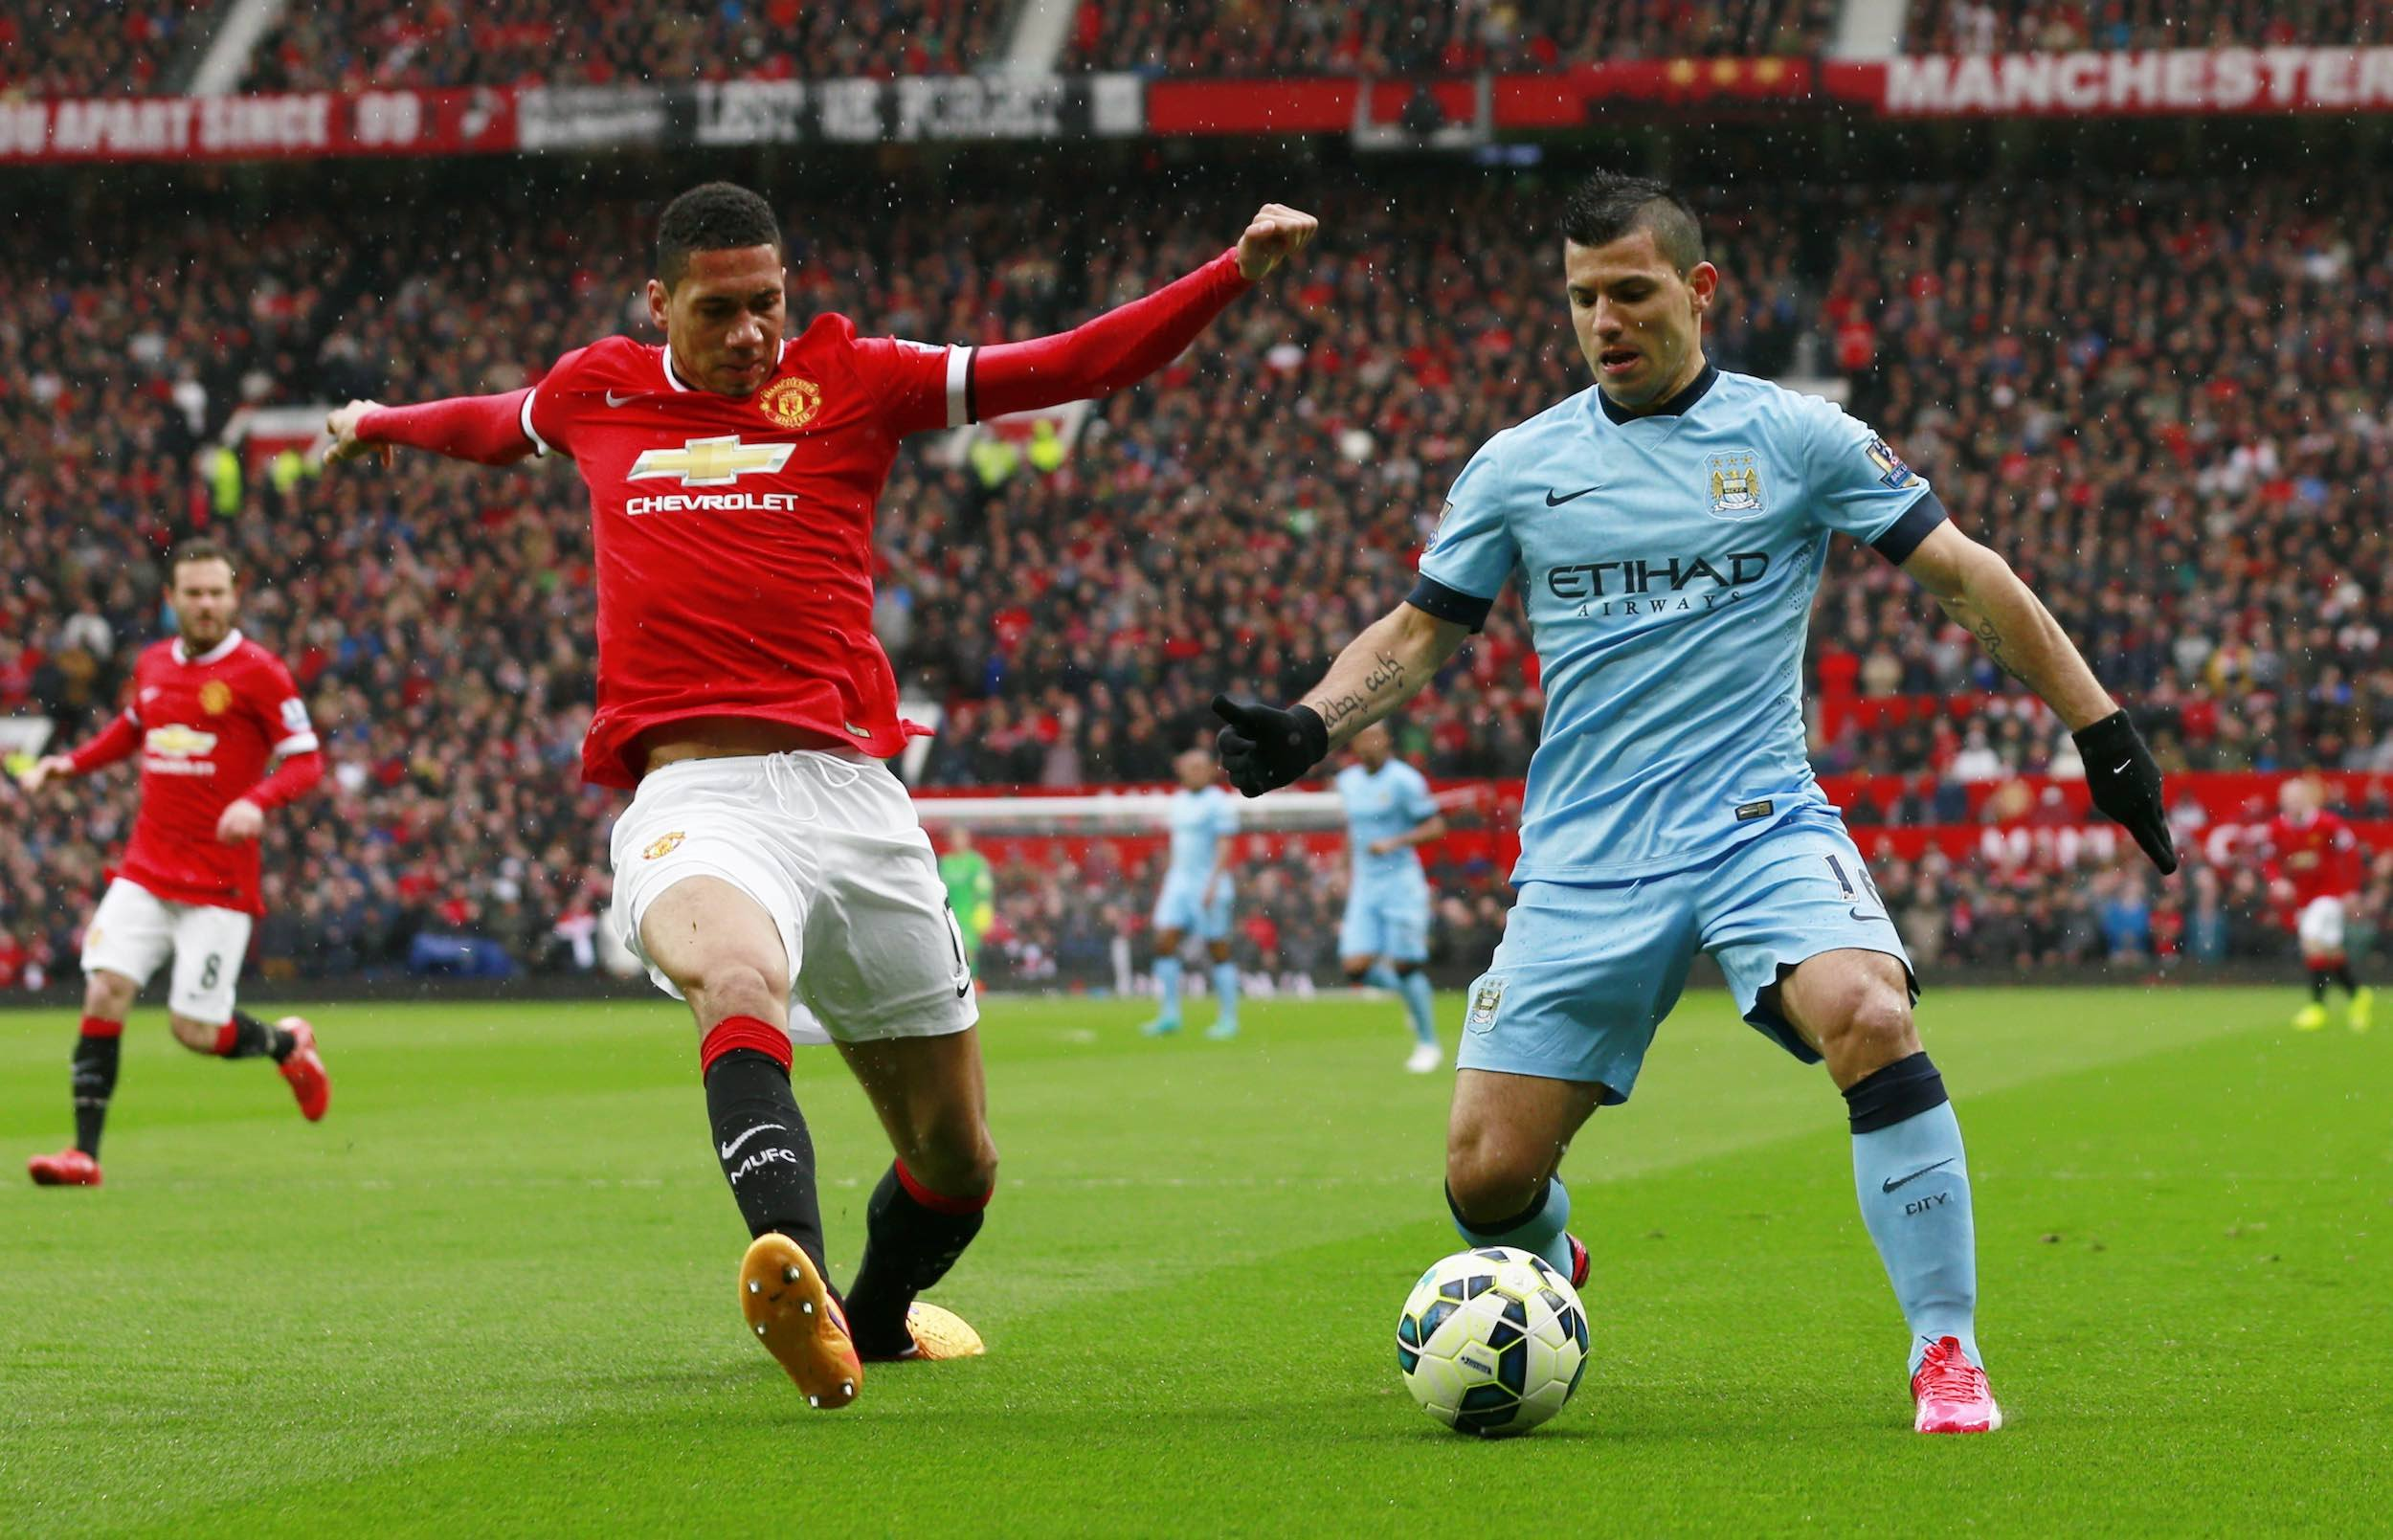 "Football - Manchester United v Manchester City - Barclays Premier League - Old Trafford - 12/4/15 Manchester United's Chris Smalling and Manchester City's Sergio Aguero in action Action Images via Reuters / Jason Cairnduff Livepic EDITORIAL USE ONLY. No use with unauthorized audio, video, data, fixture lists, club/league logos or ""live"" services. Online in-match use limited to 45 images, no video emulation. No use in betting, games or single club/league/player publications.  Please contact your account representative for further details."